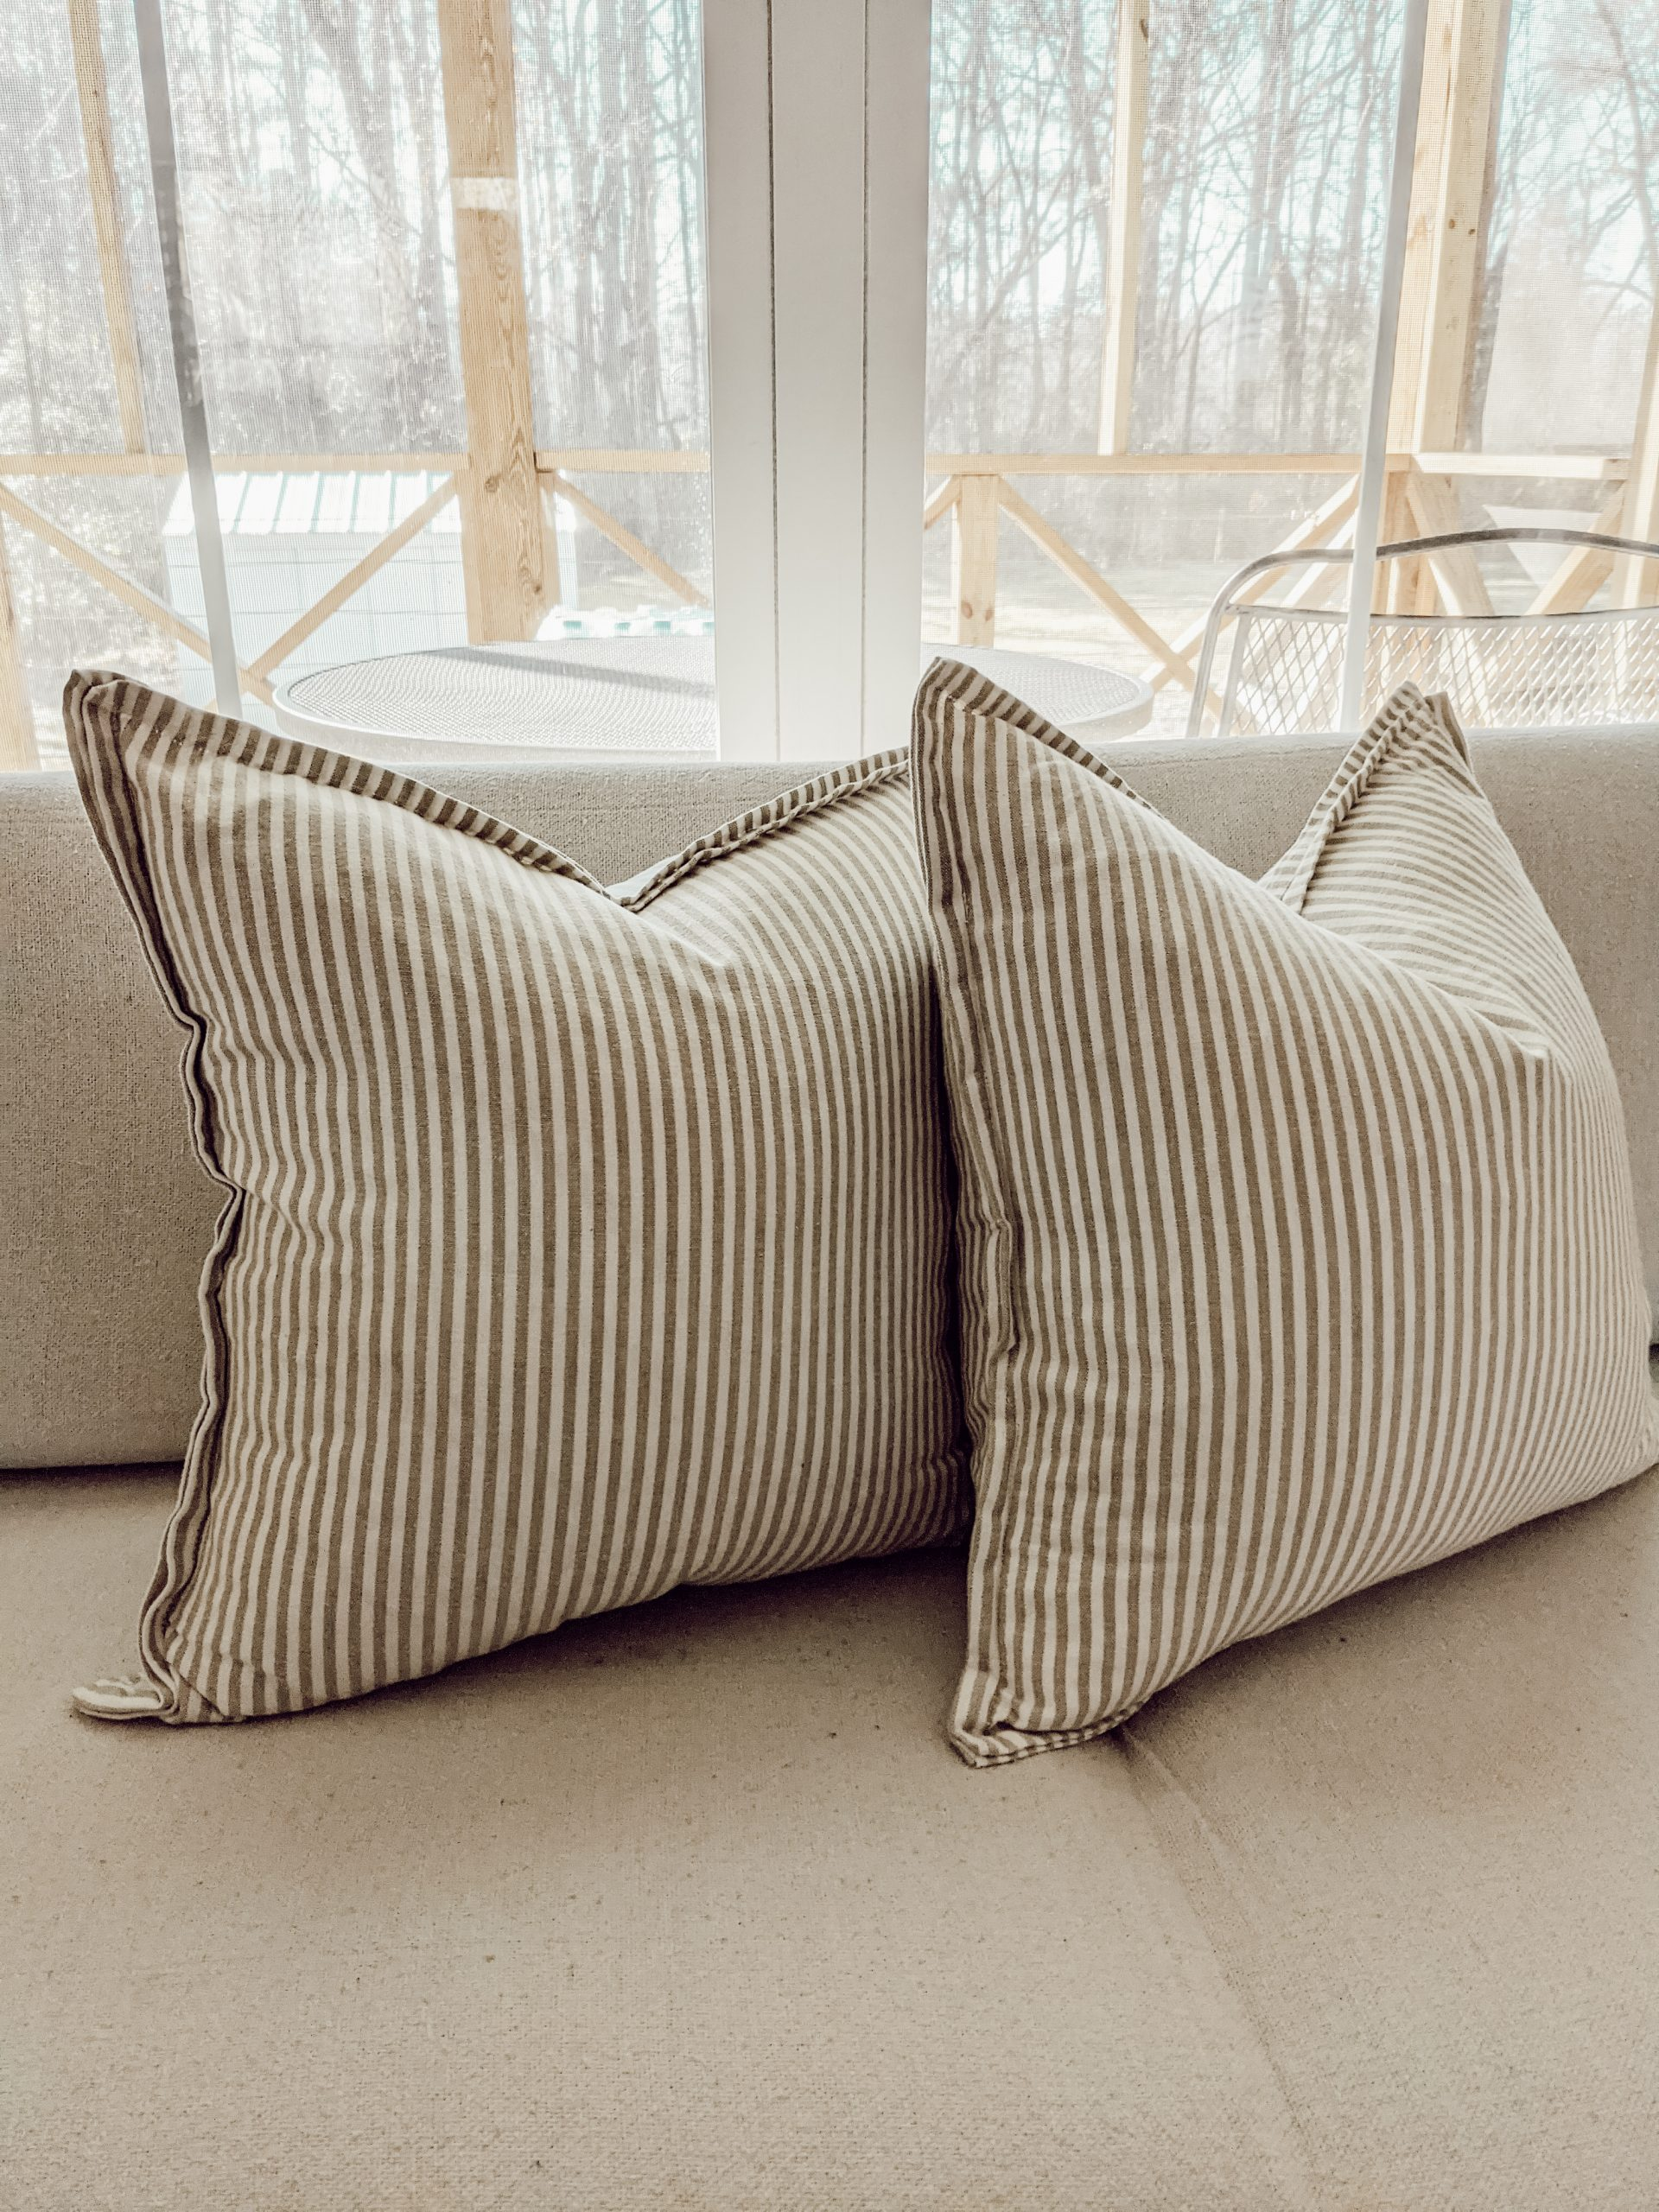 striped beige and cream pillows